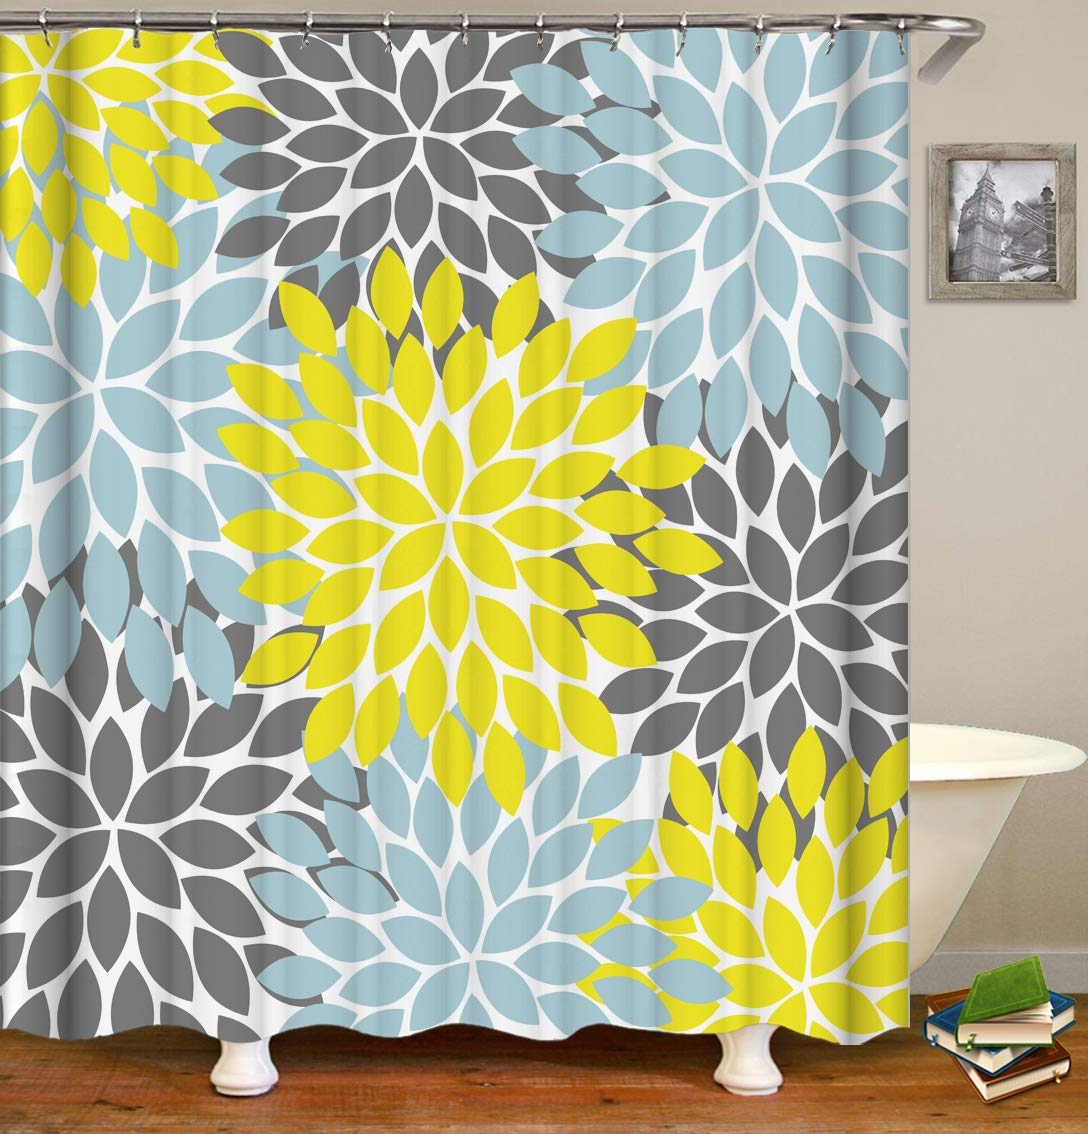 Raymall Yellow Gray Shower Curtain Dahlia Flower Floral Seamless Pattern Kaleidoscope Leaves 72x72 Inches Waterproof Polyester Fabric with Hooks for Bathroom Decor